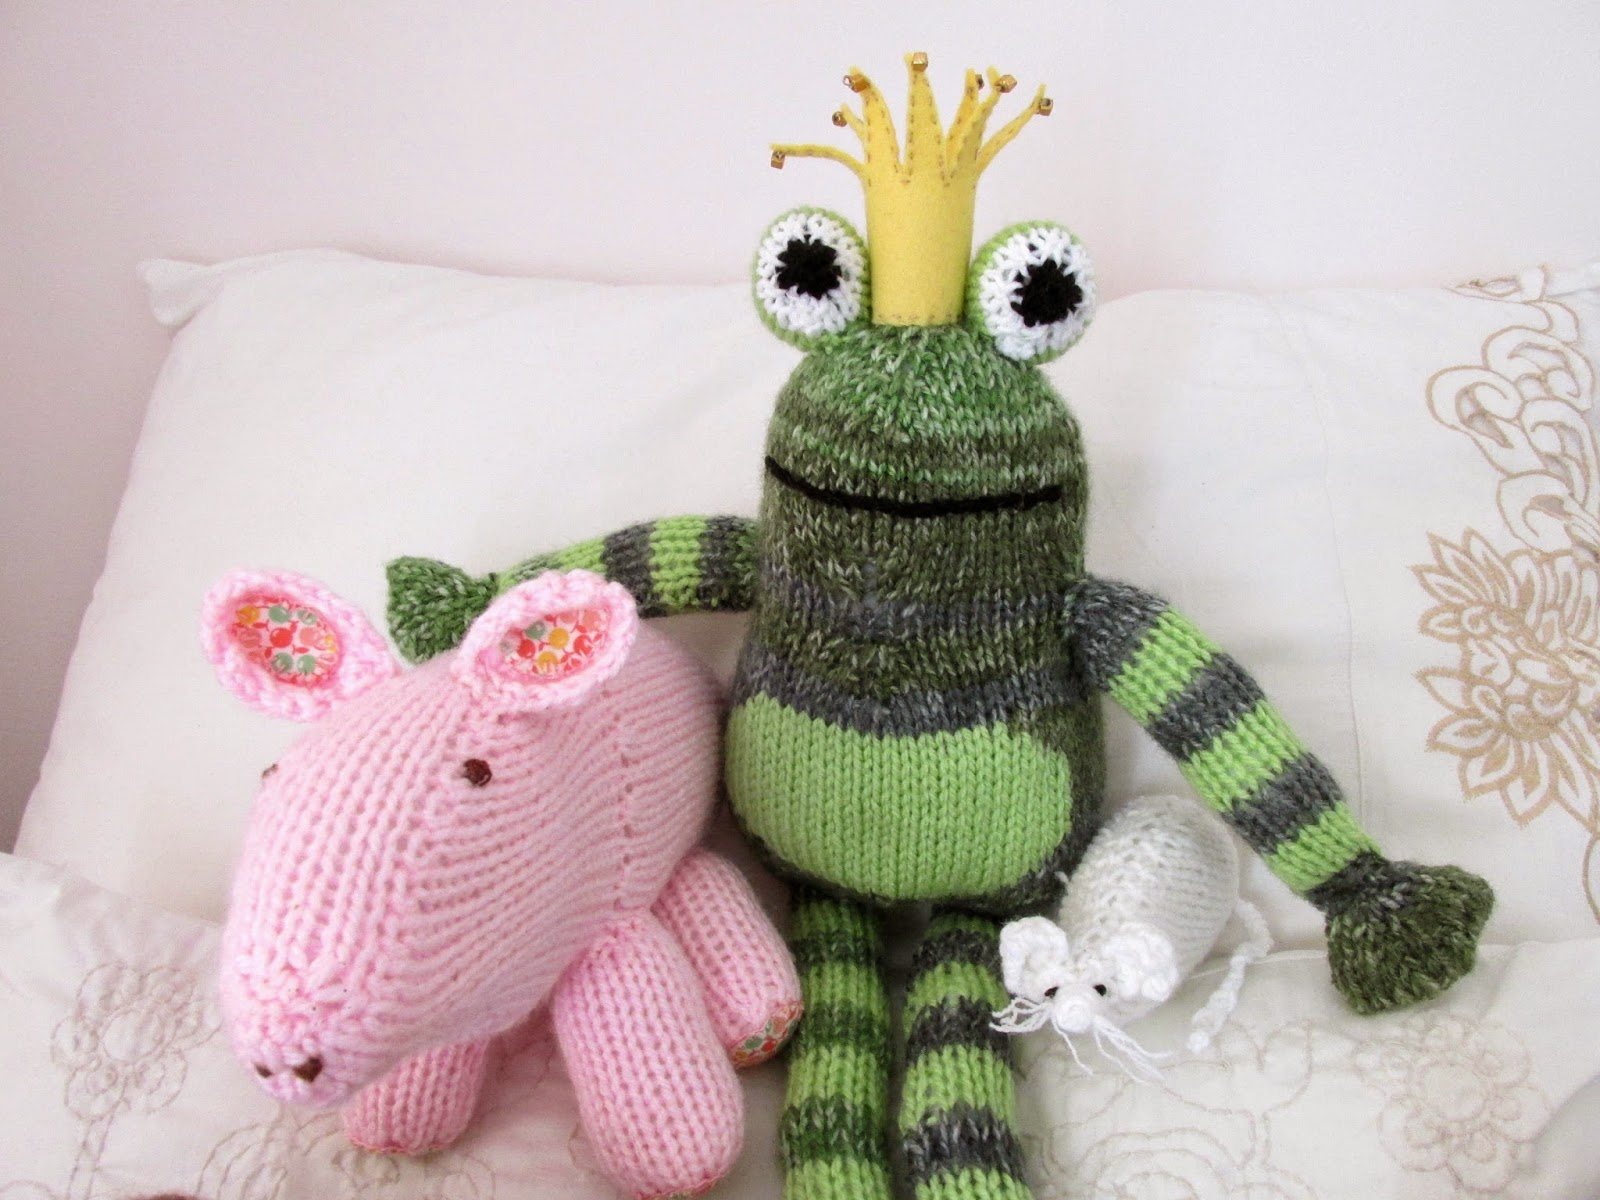 Knitting Animals From Squares : Cape pincushion granny squares and cute knitted animals